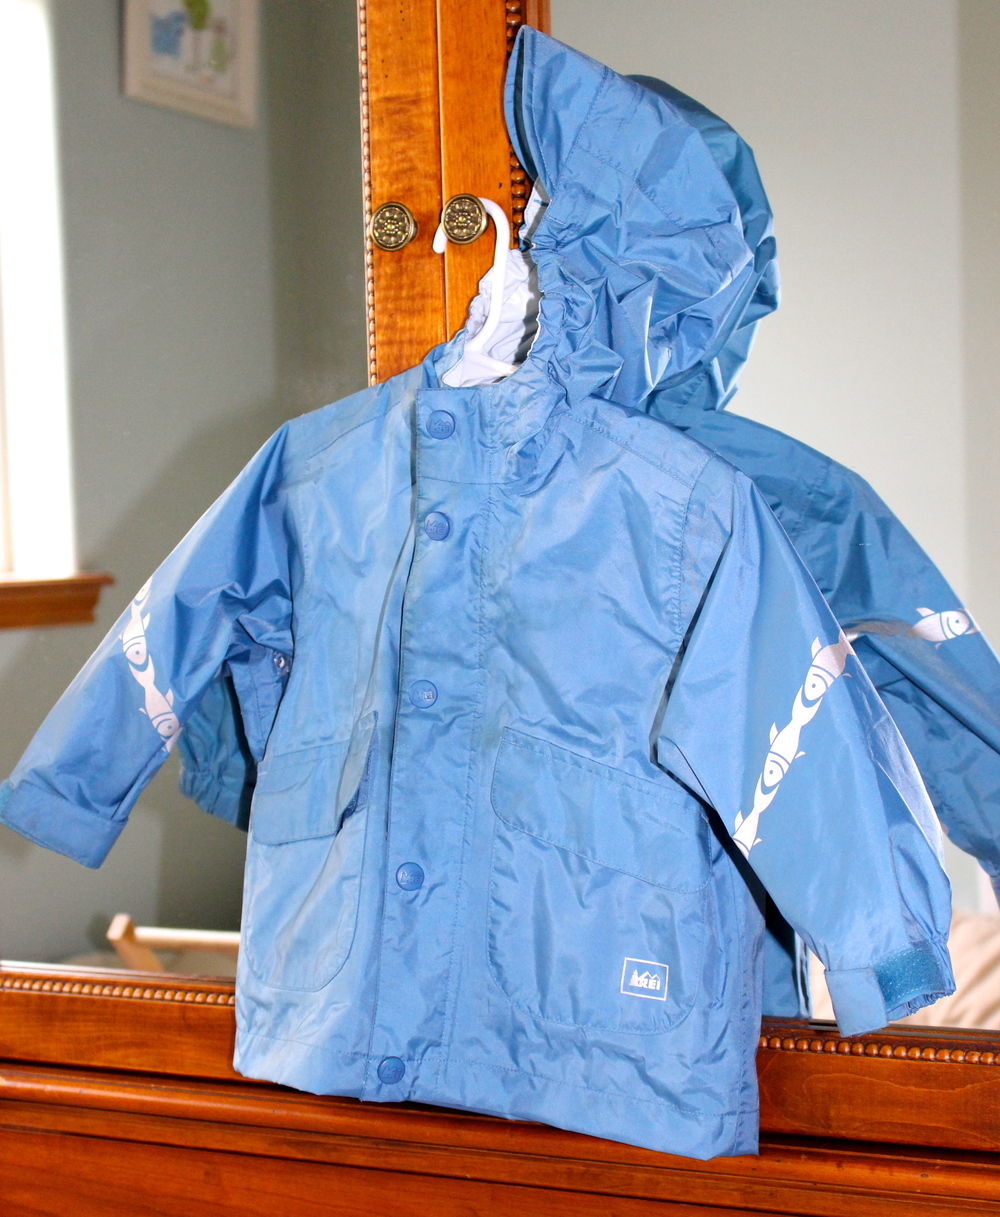 REI toddler raincoat from resale